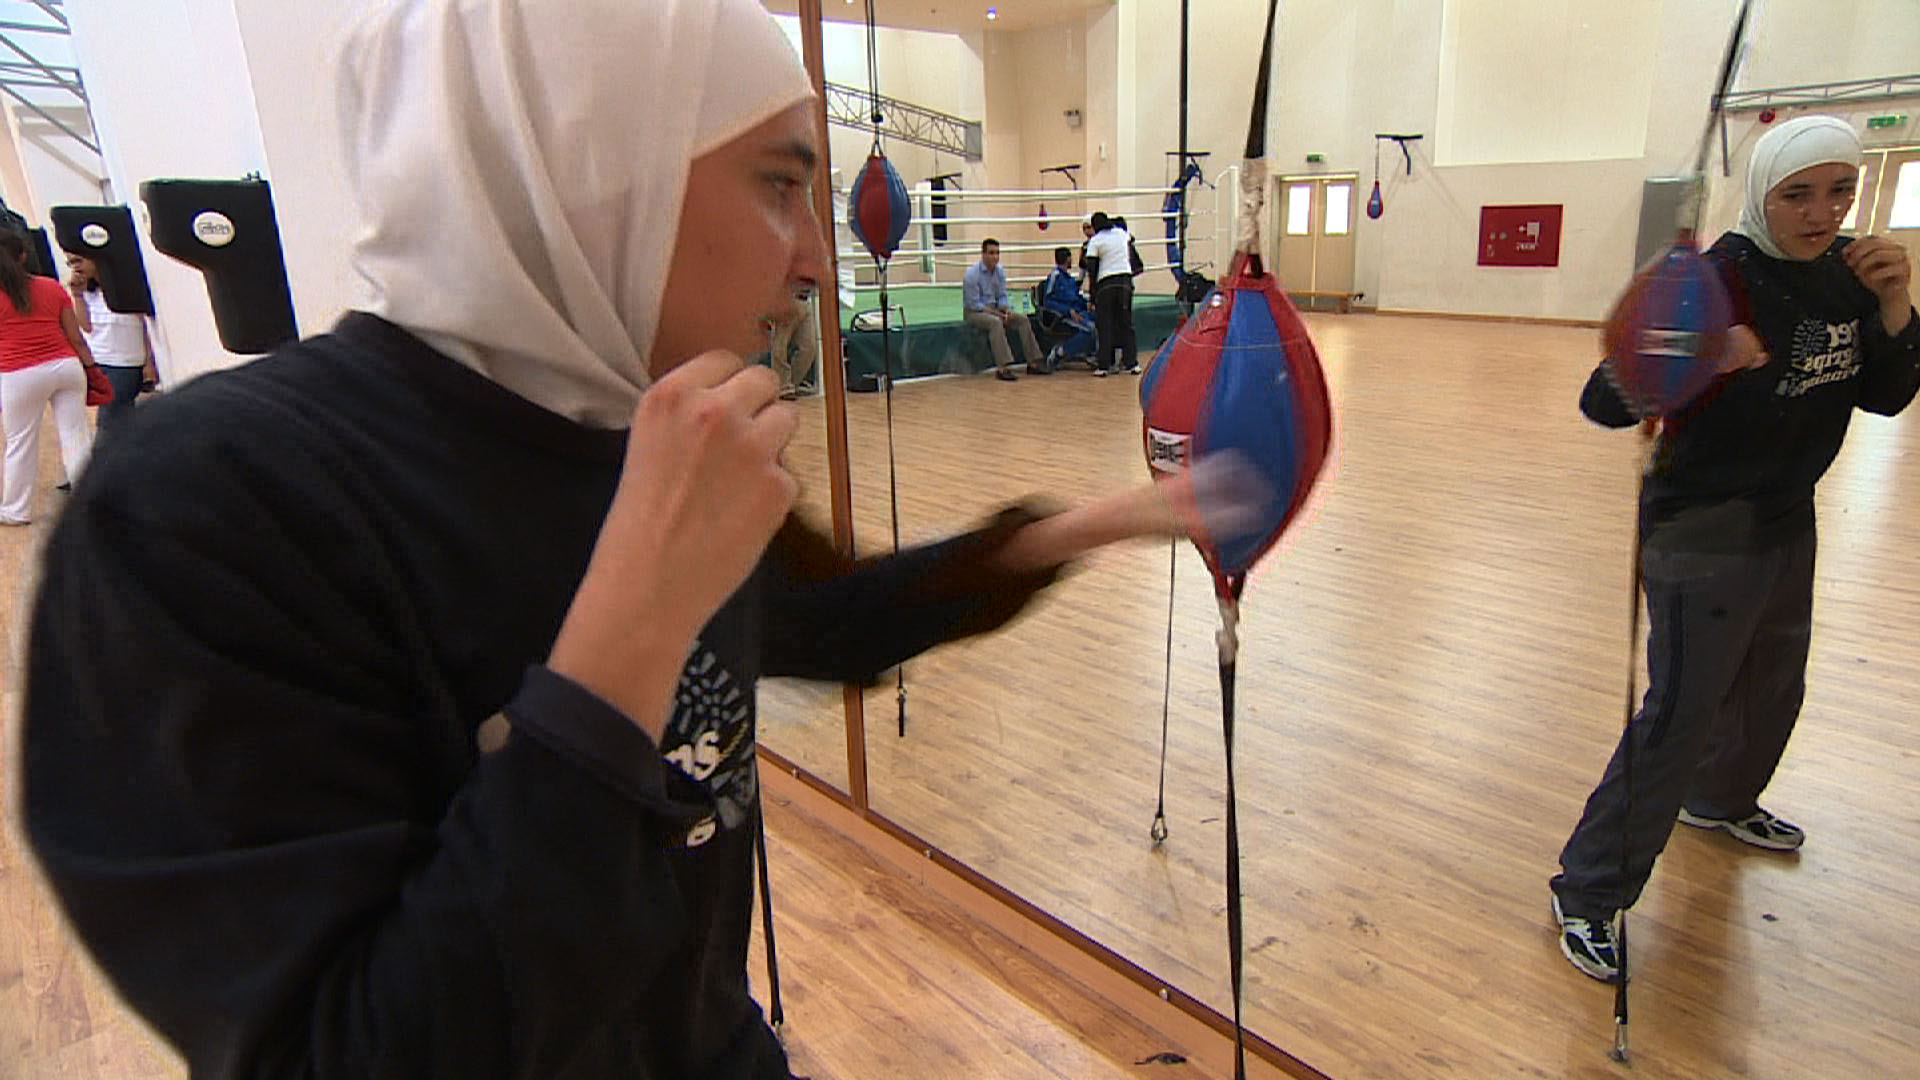 bloomsbury muslim singles Meet single women over 50 in bloomsbury interested in dating new people on zoosk date smarter and meet more singles interested in dating.